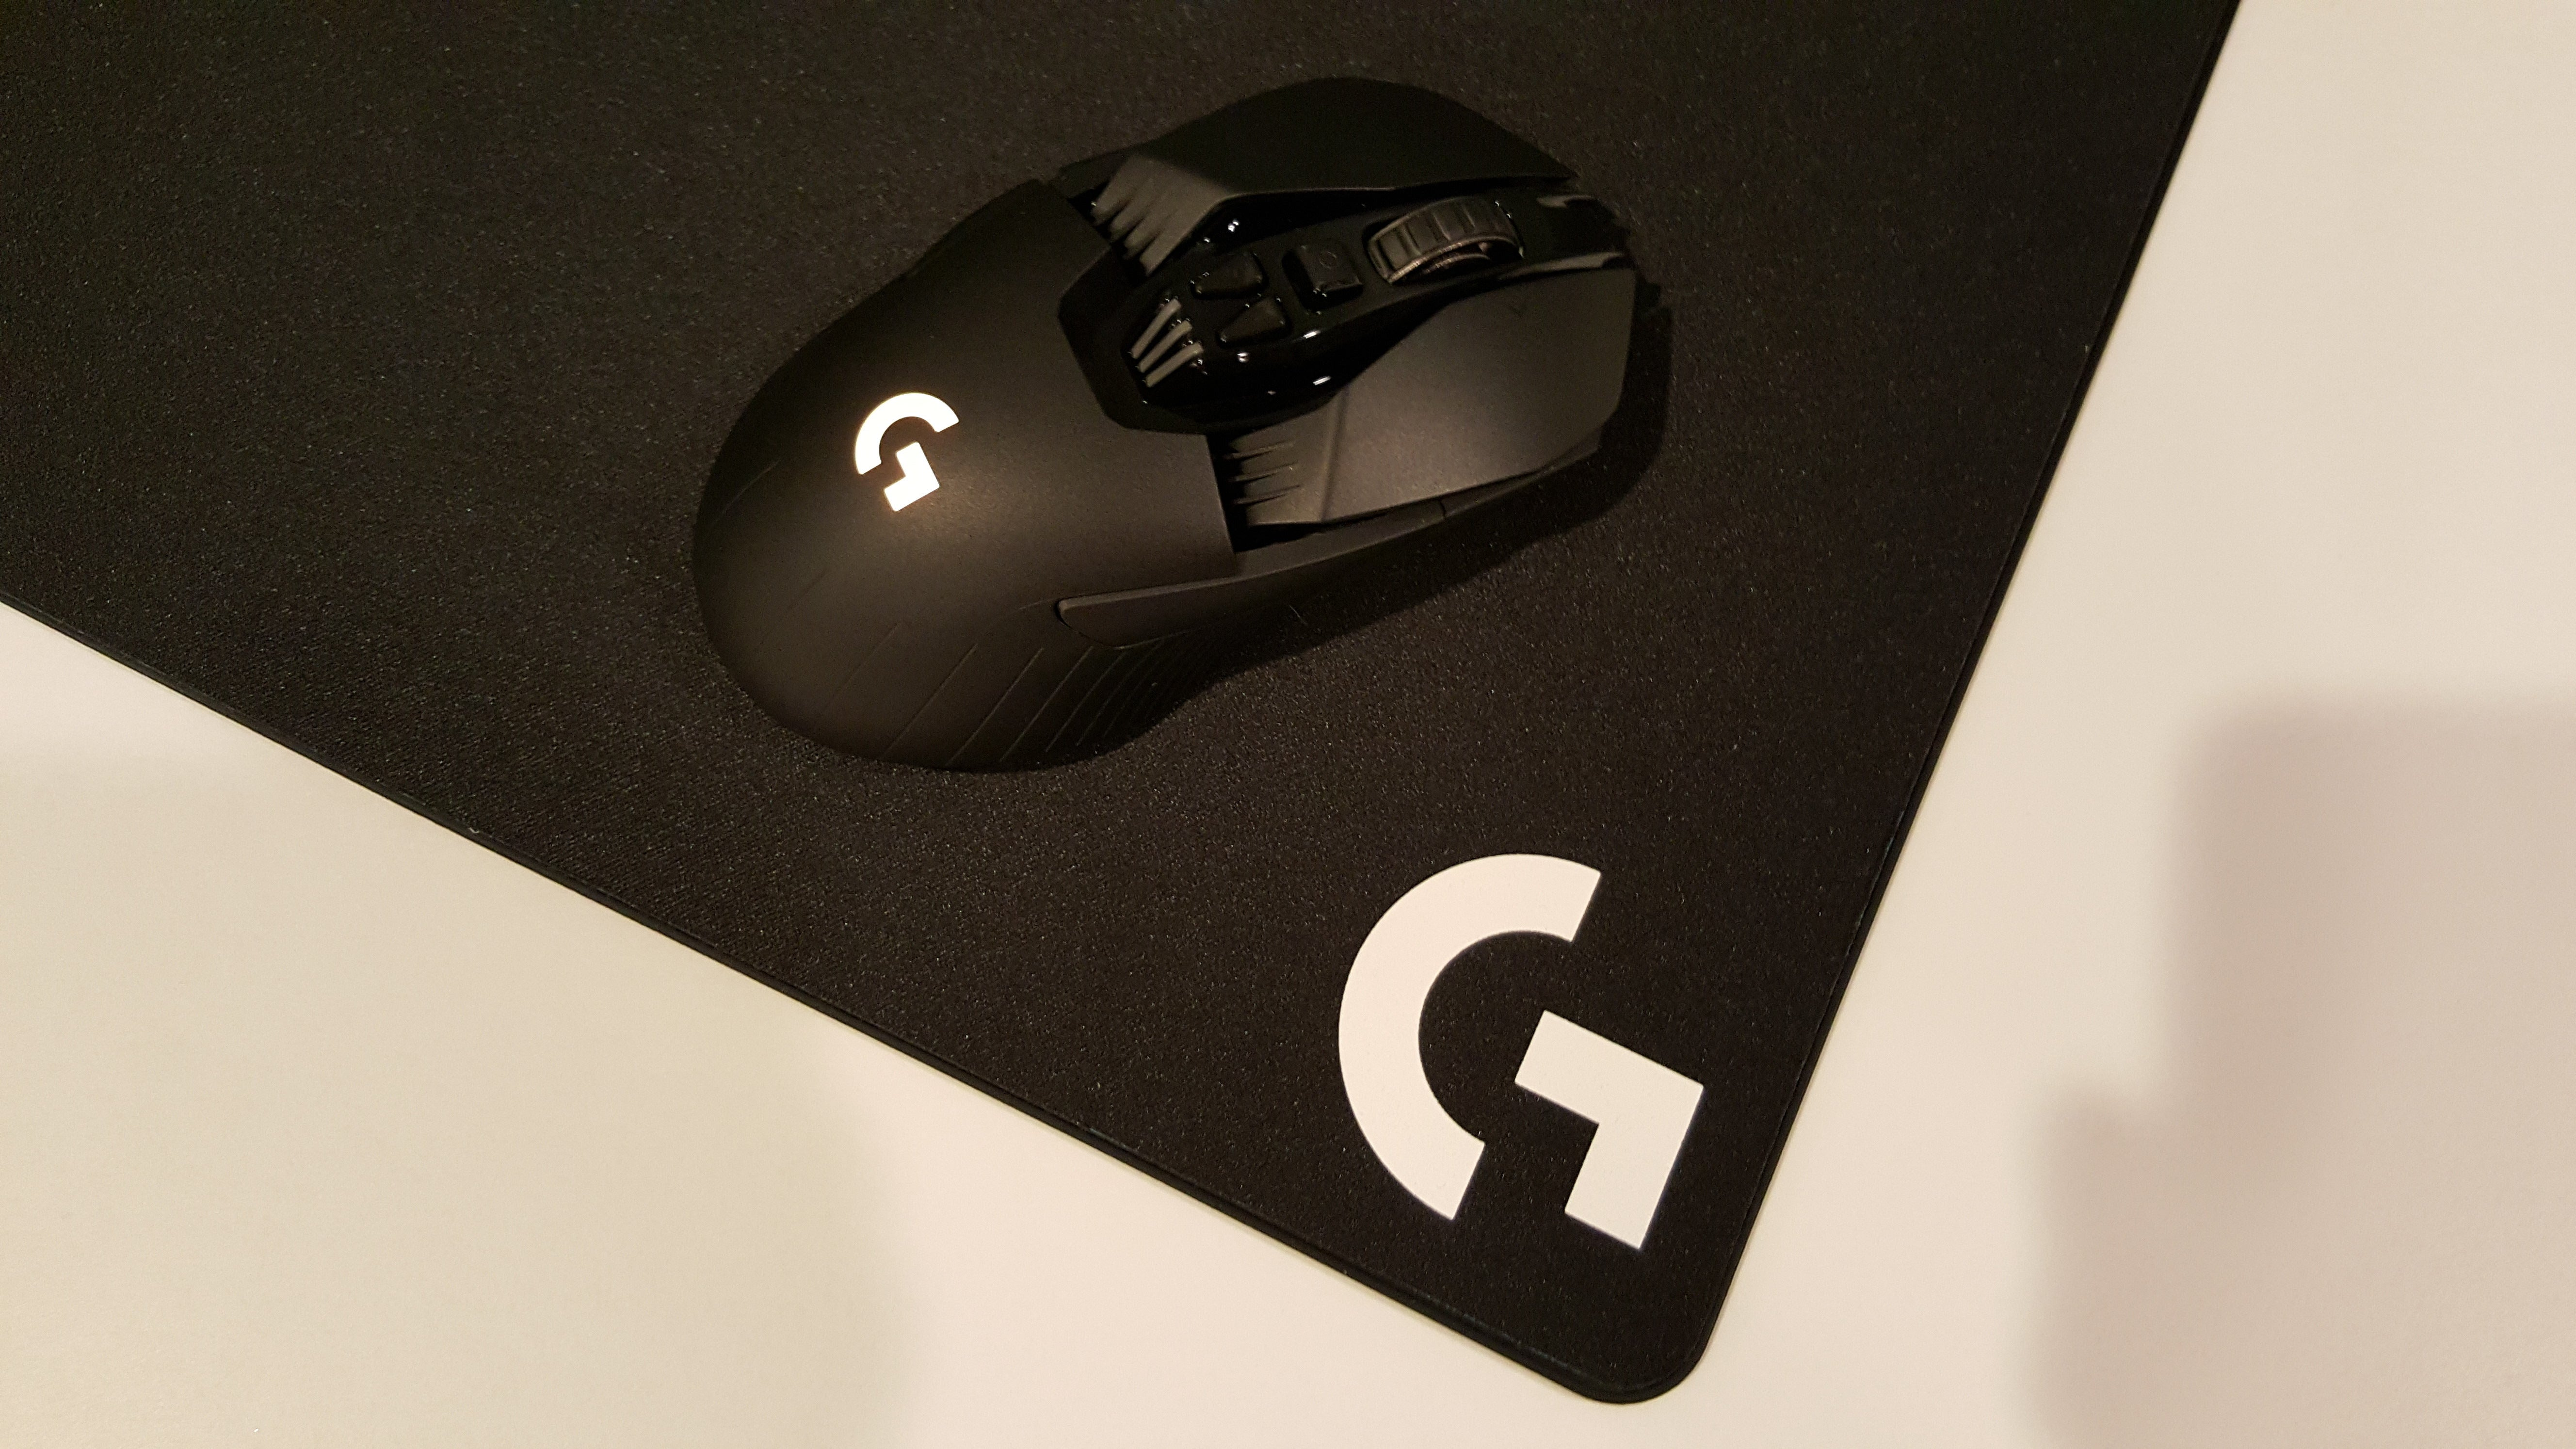 b6dee8c3775 Logitech G903 review: The best wireless mouse that (lots of) money can buy